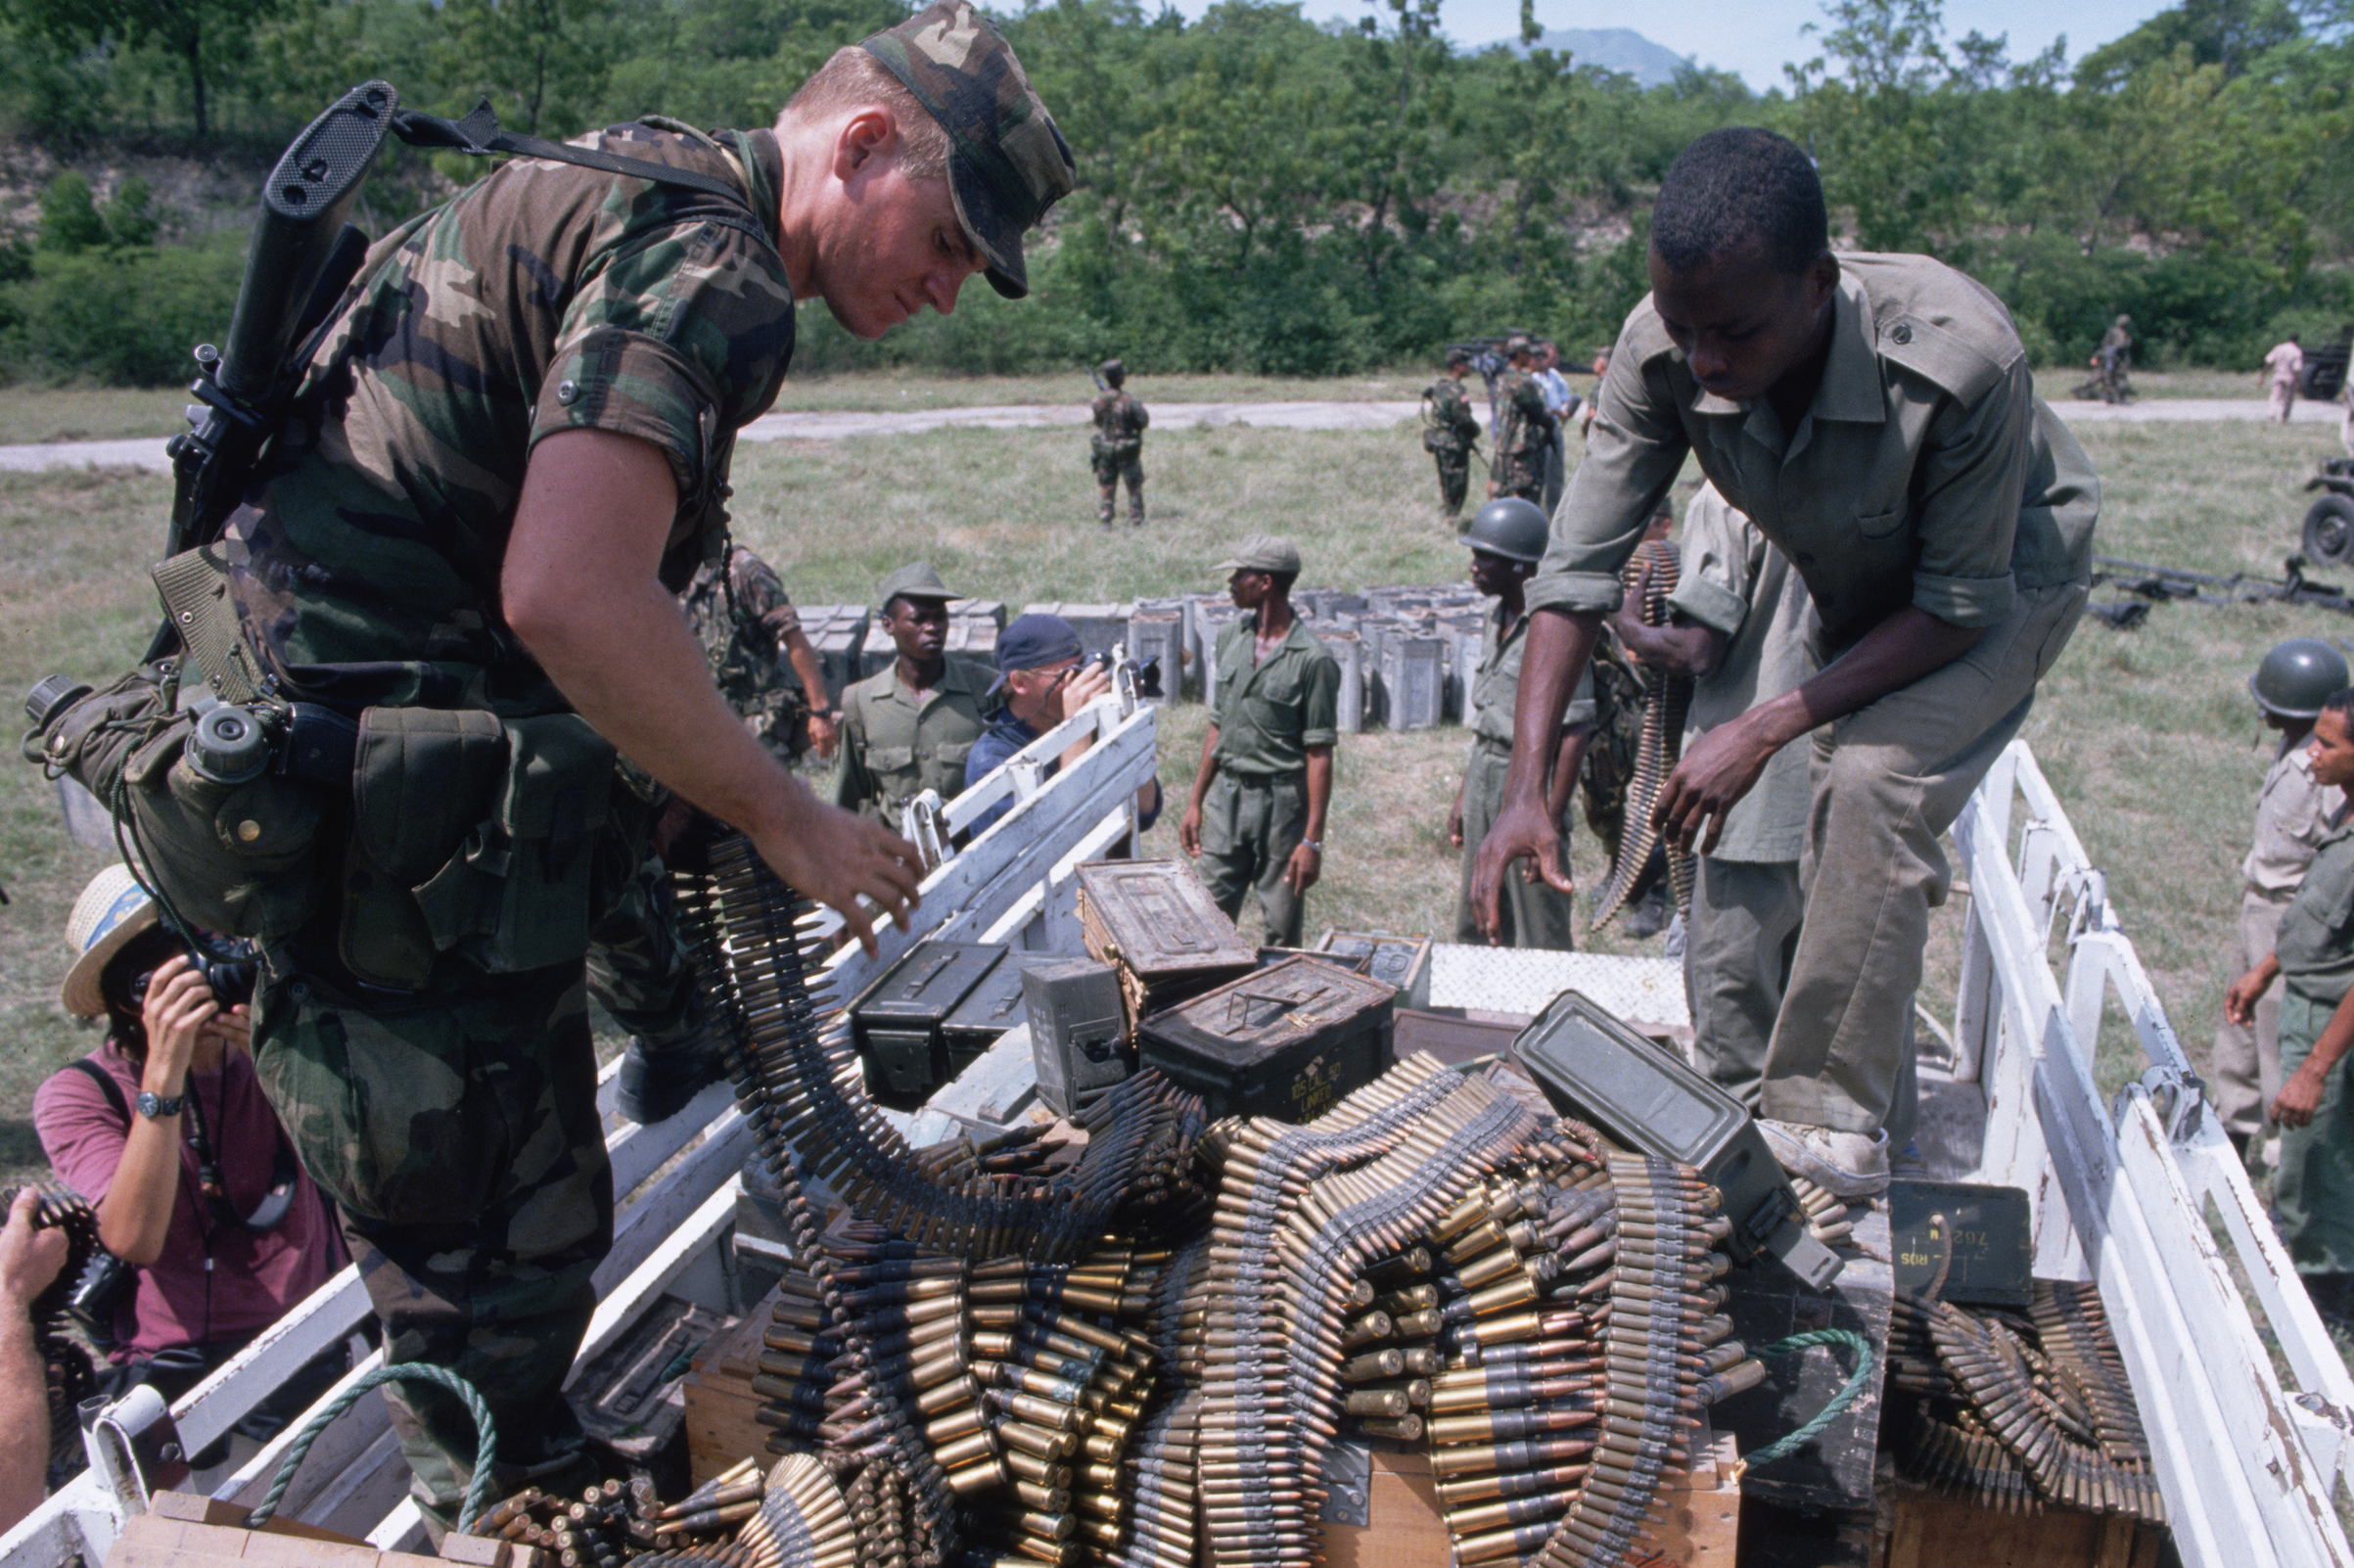 An American and Haitian soldier unload ammunition together from a supply truck in 1994.